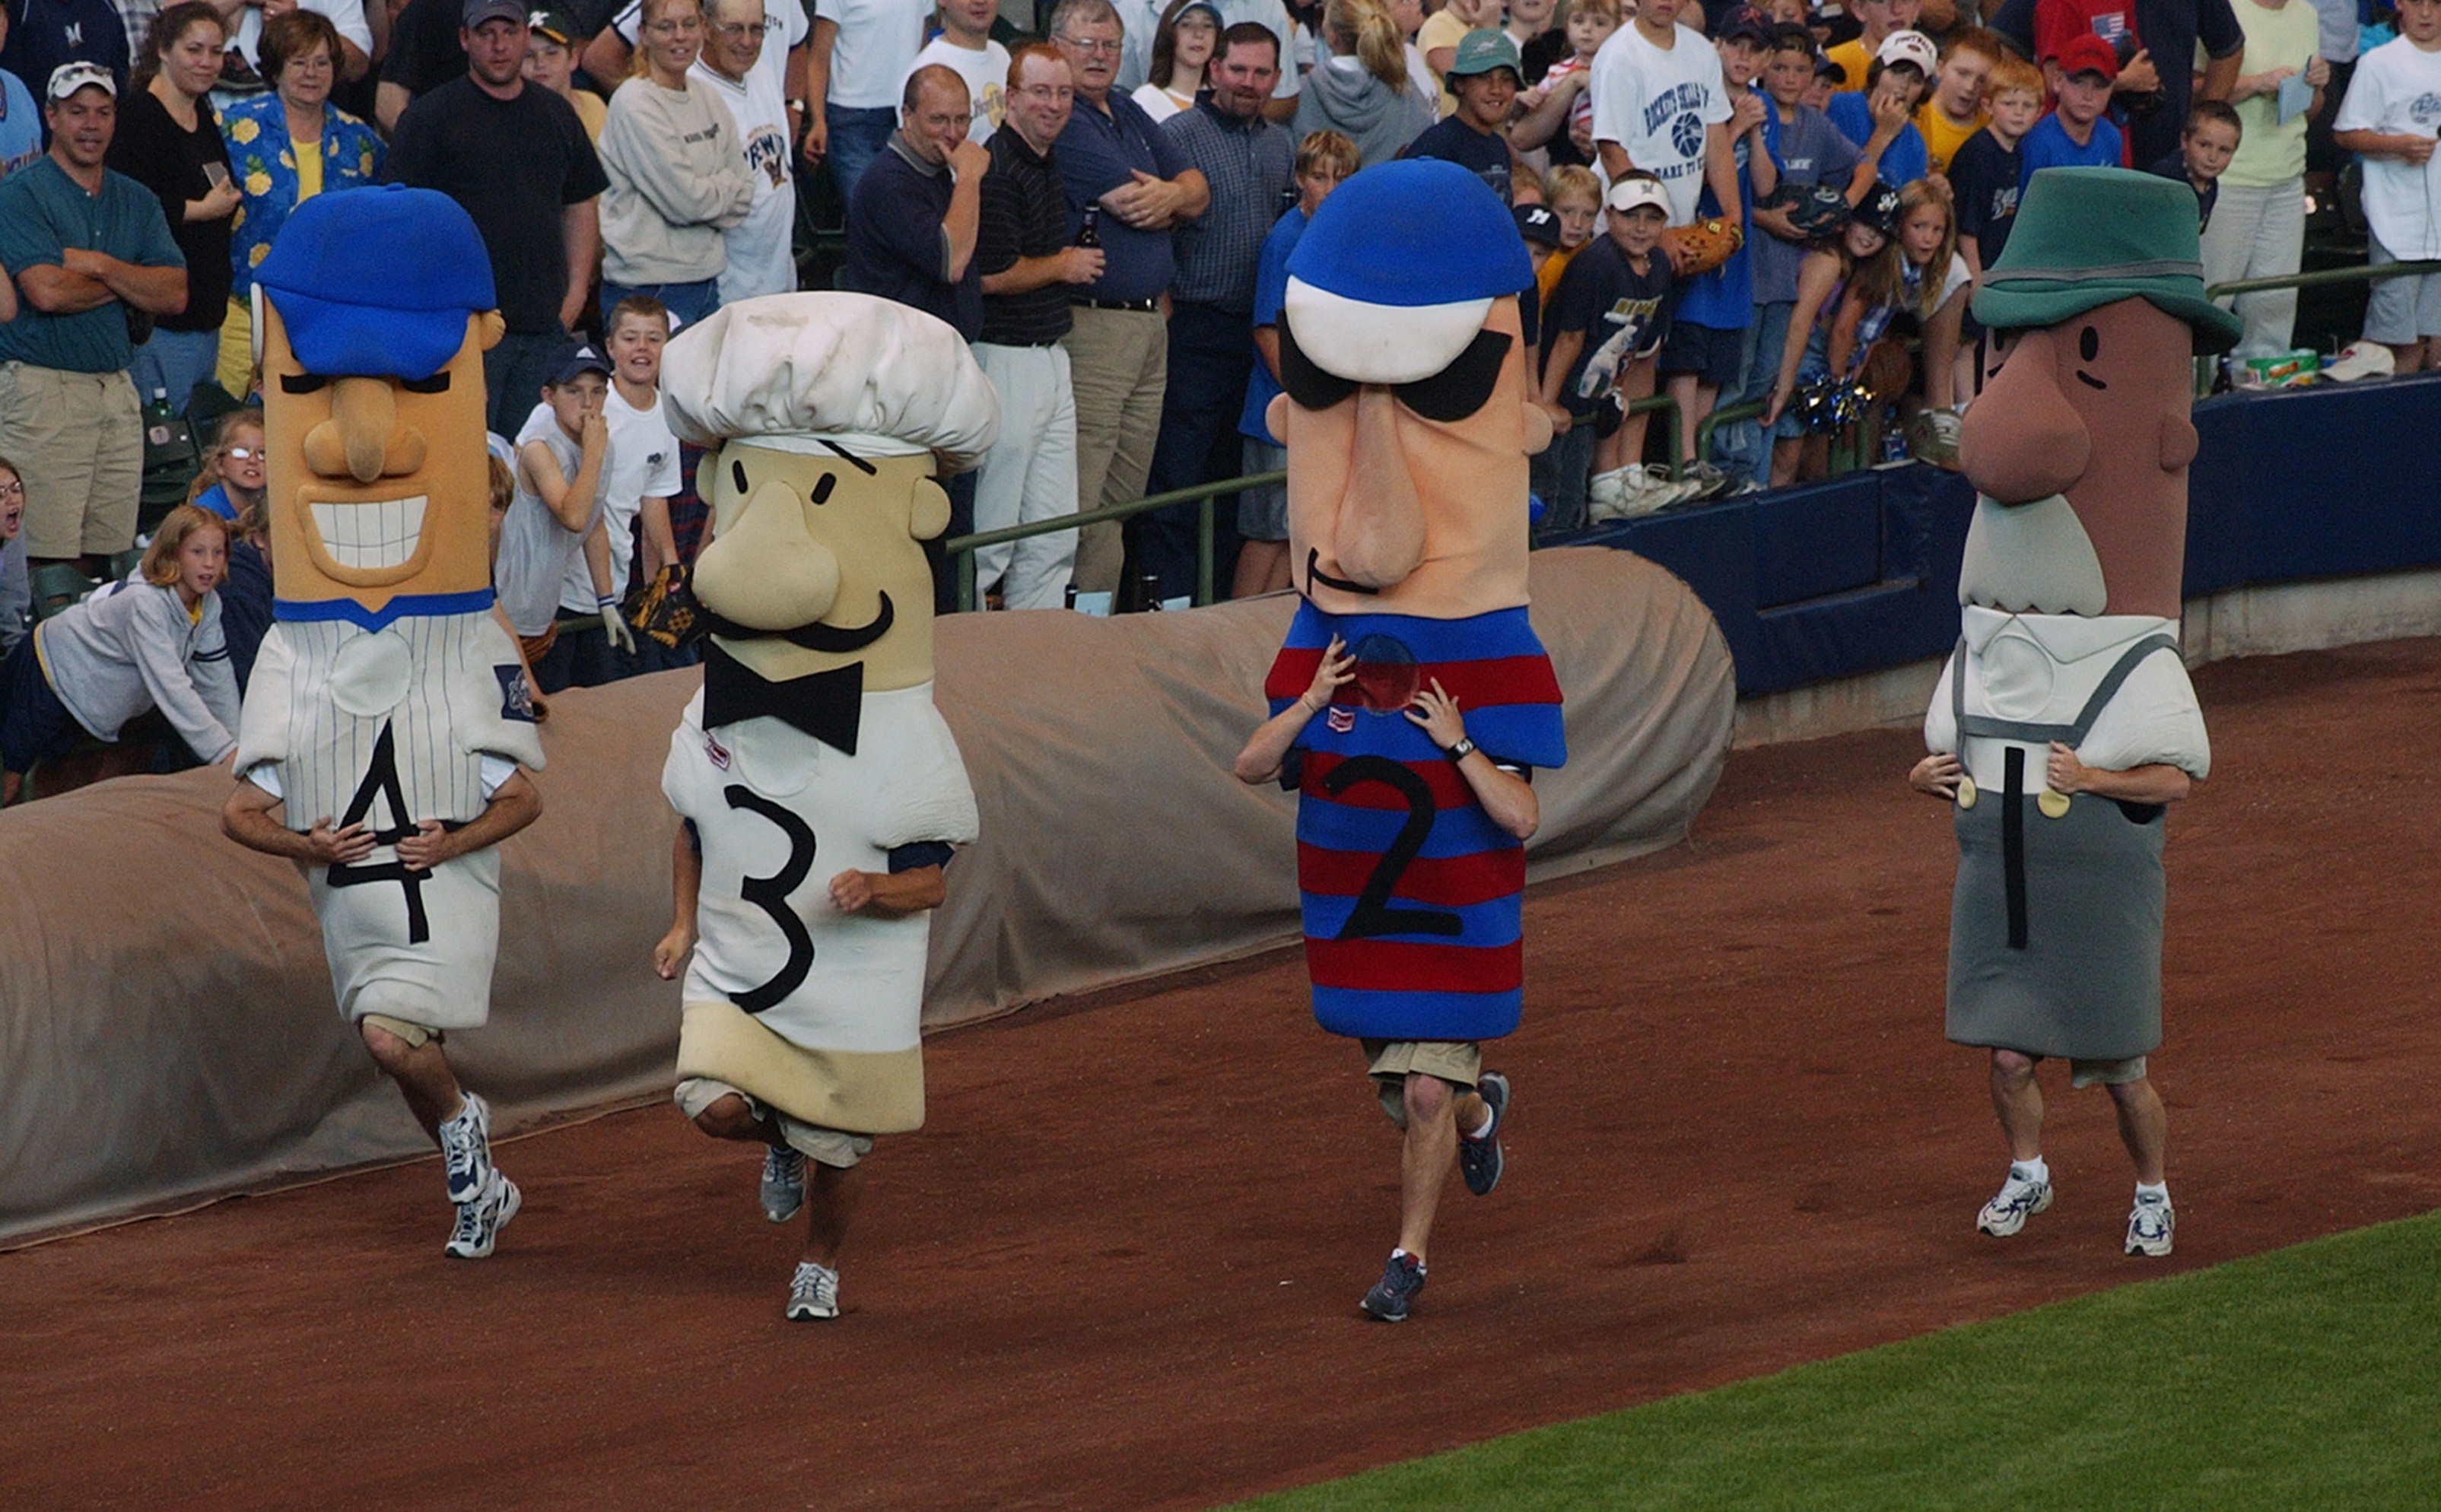 MILWAUKEE - JUNE 17:  A view of the Polish sausage, the Italian sausage, the Hot Dog, and the Bratwurst in the famous Sausage Race taken during the game between the Milwaukee Brewers and the Seattle Mariners on June 17, 2004 at Miller Park in Milwaukee, W